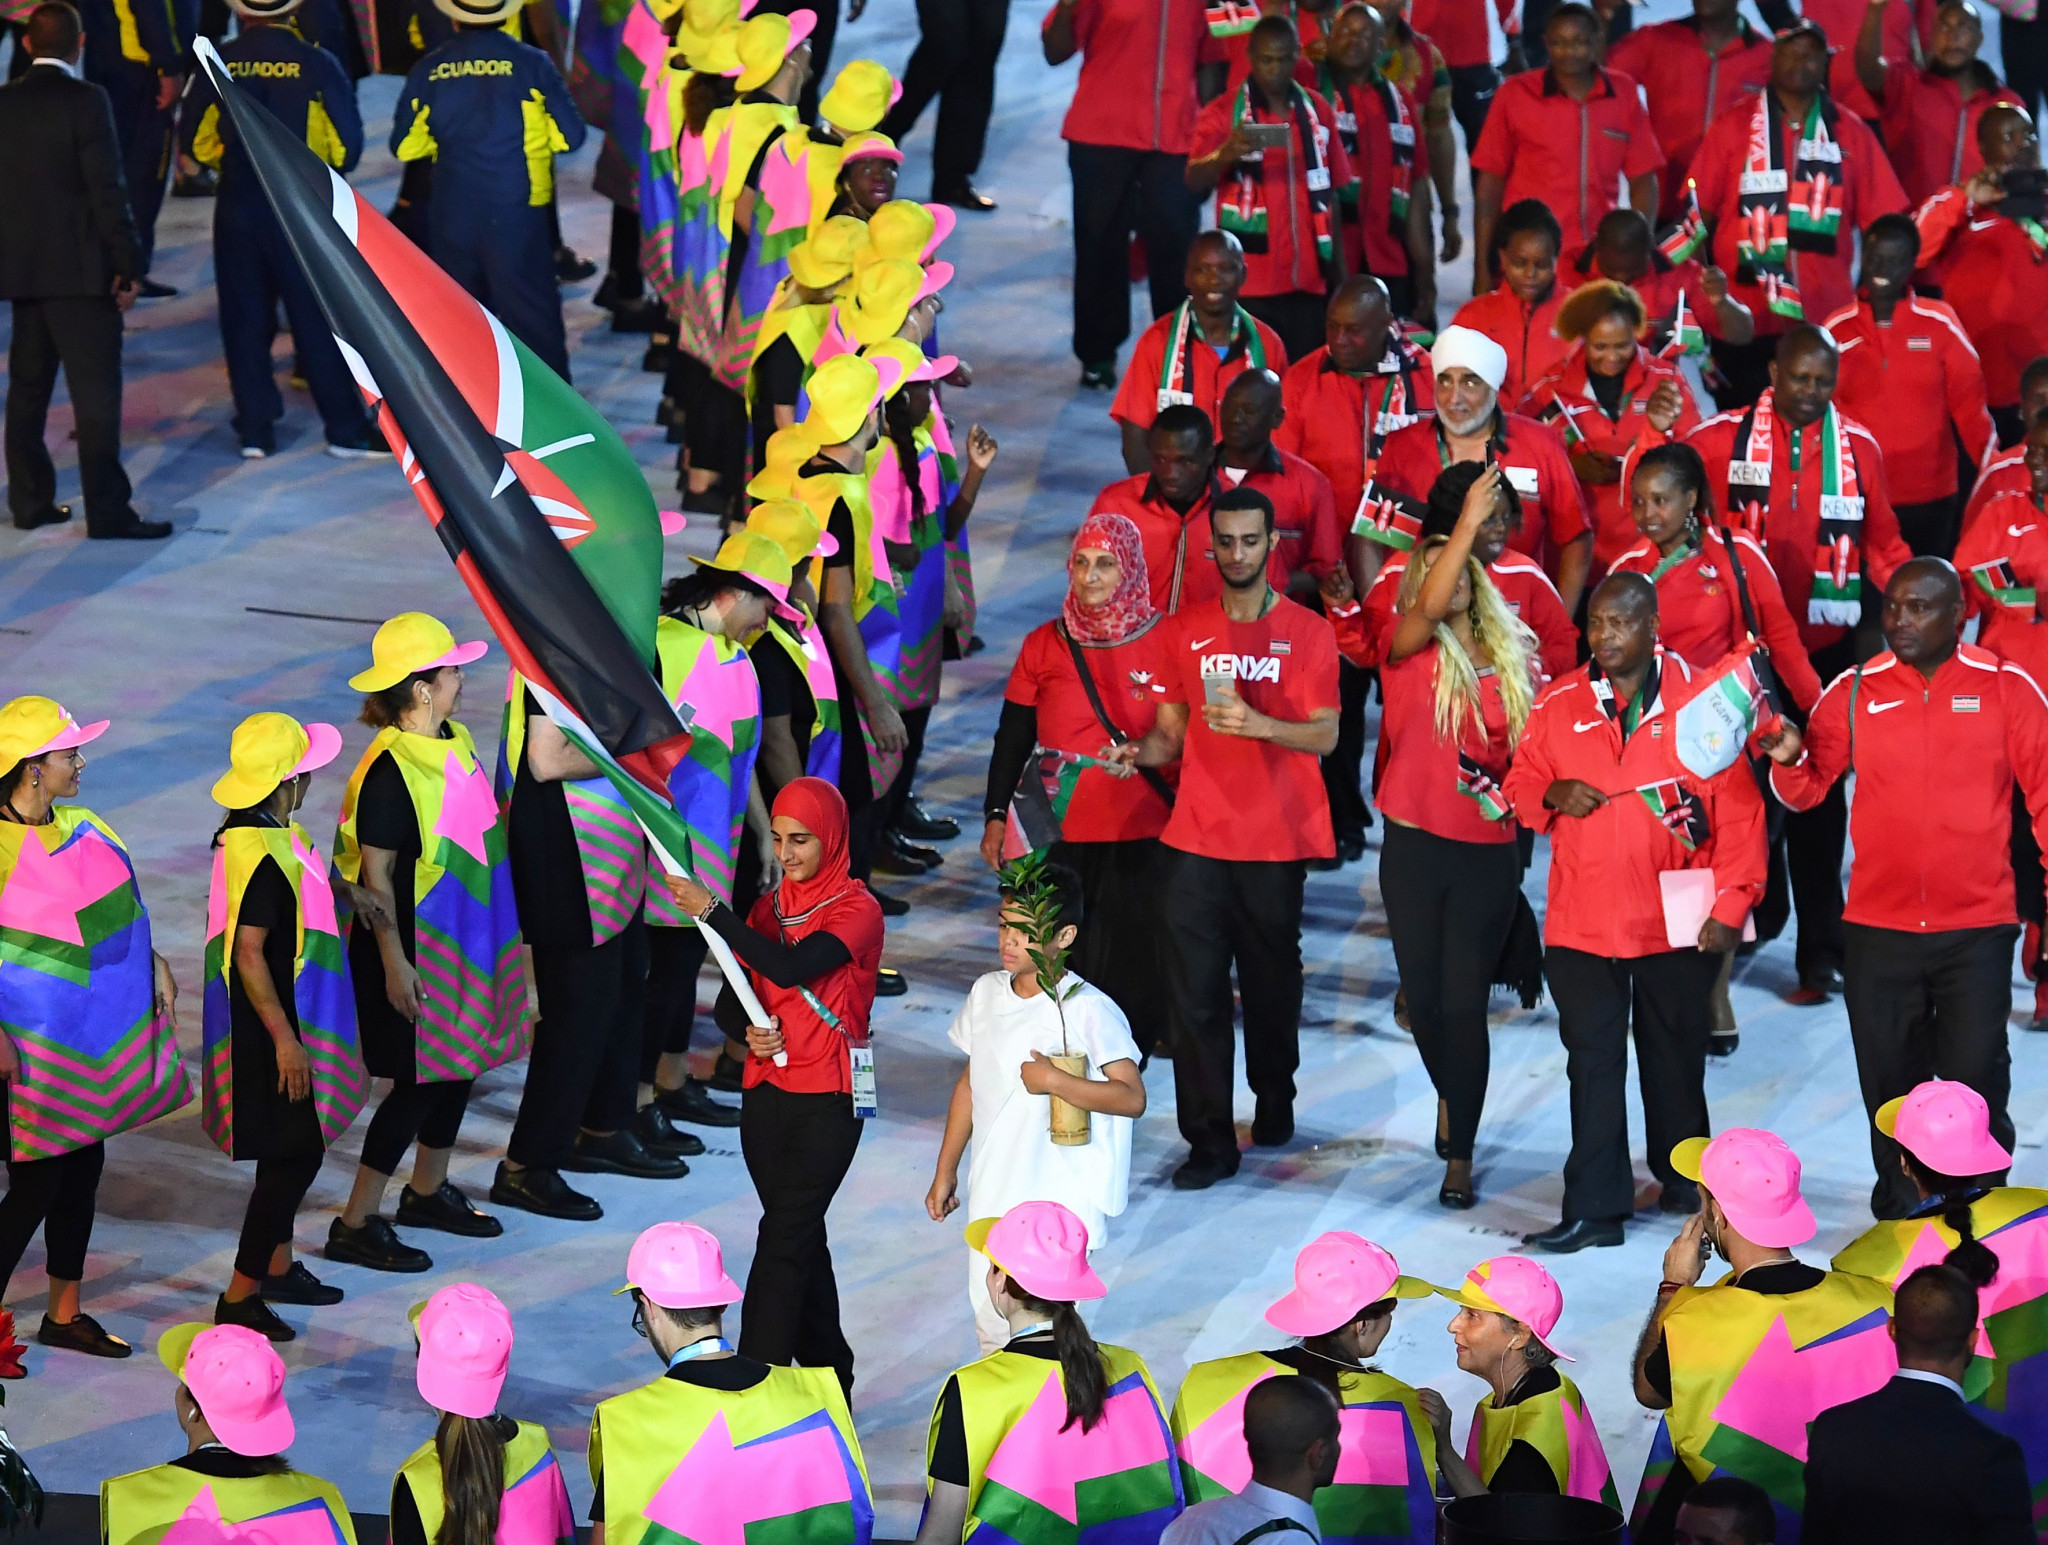 Kenya's participation at the Rio 2016 Olympic Games was marred with controversy ©Getty Images